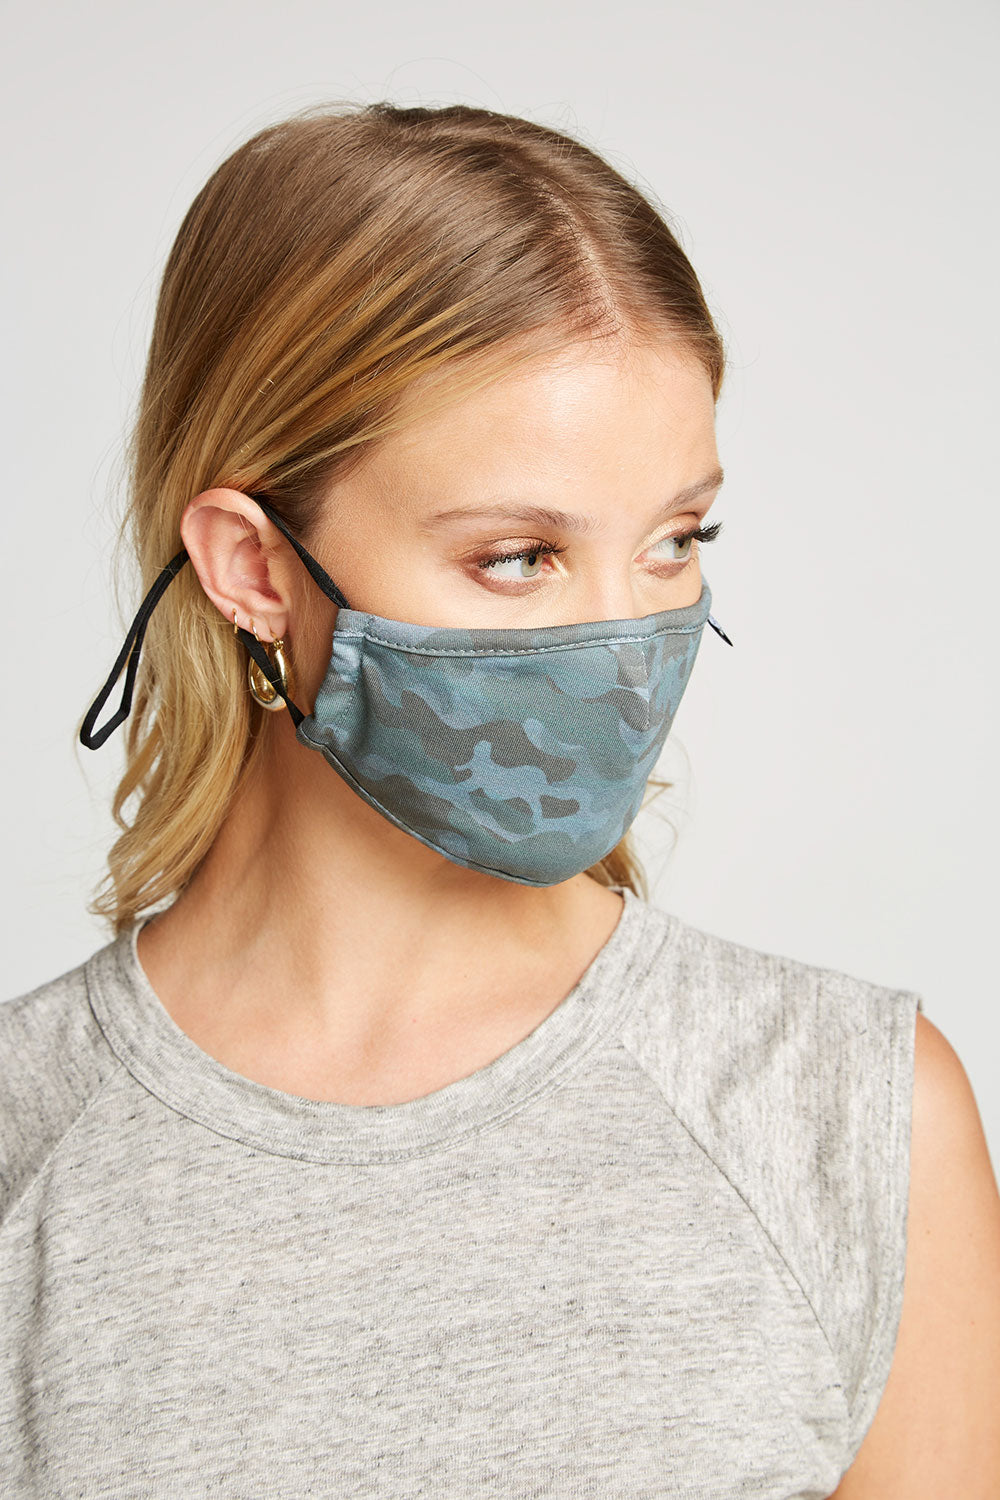 Black Camo Mask MASKS - chaserbrand